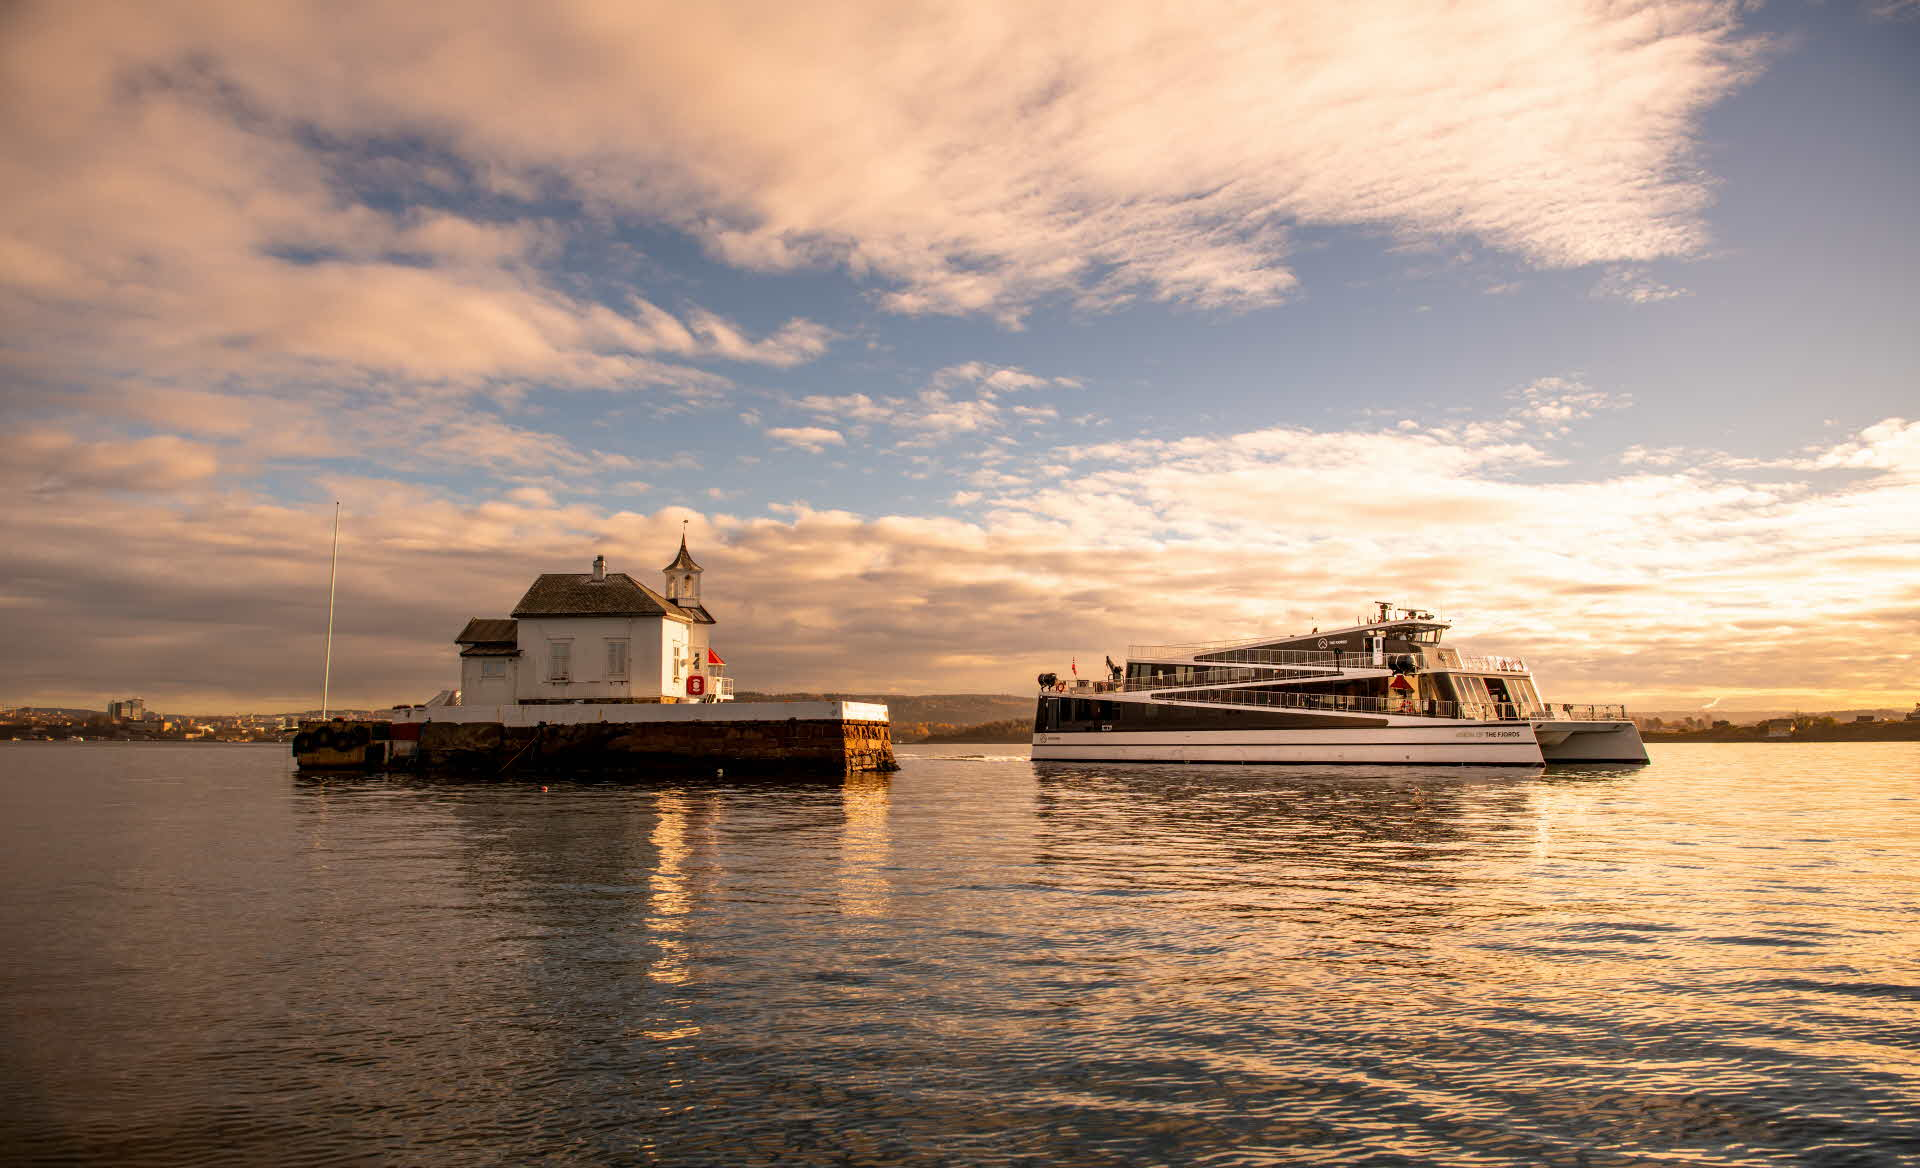 The hybrid vessel Vision of The Fjords next to a light house on a very small island in the Oslofjord in calm sea and sunset